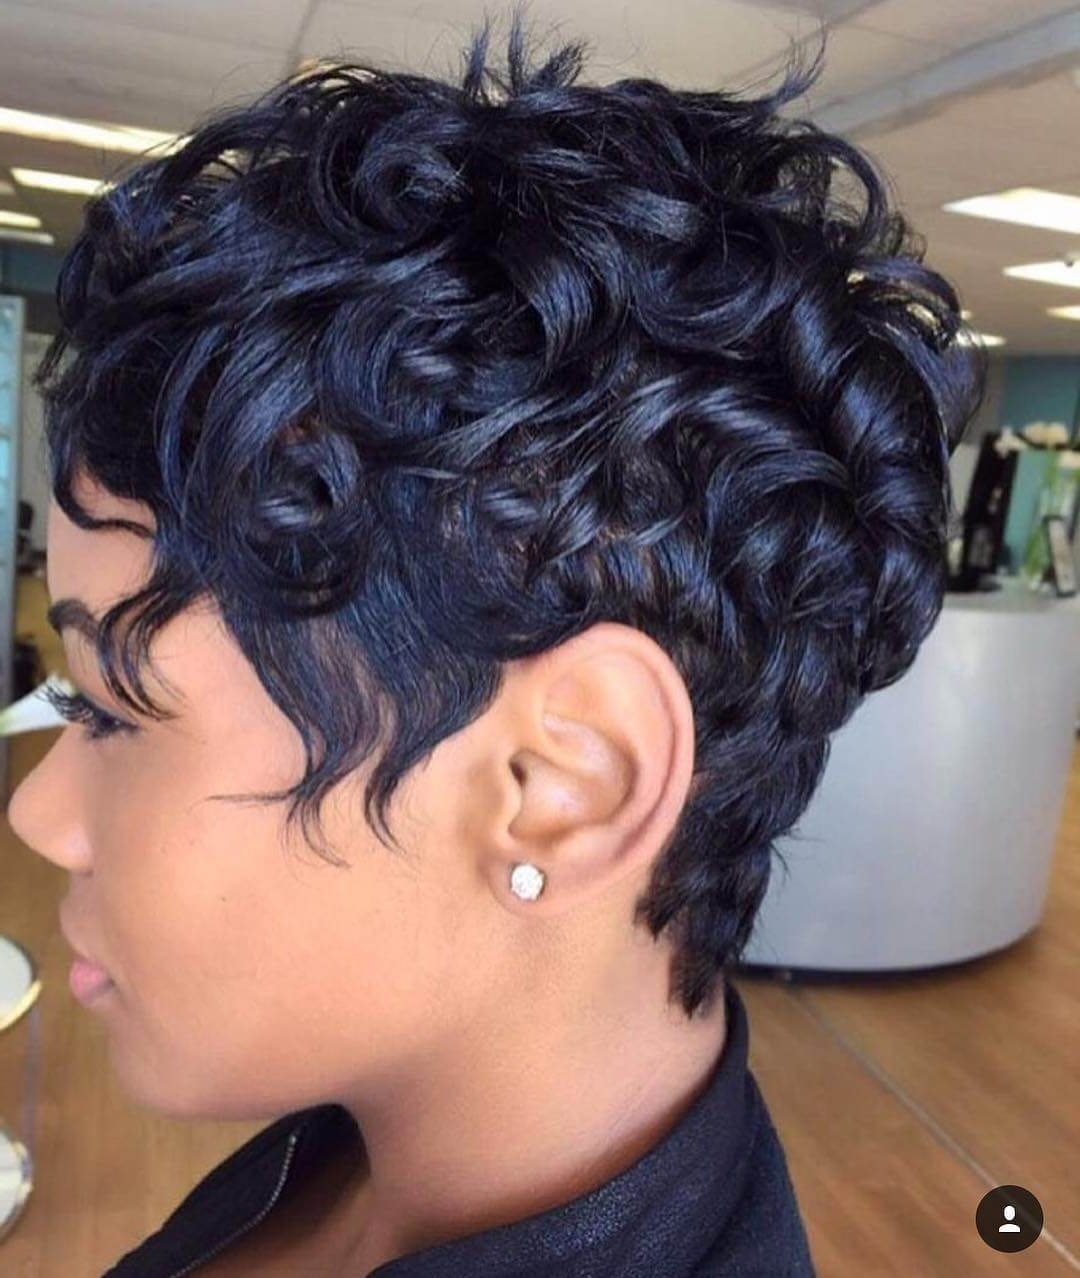 12 Curly Pixie Cut For Short Or Medium Length Hair In Curly Black Tapered Pixie Hairstyles (View 1 of 20)